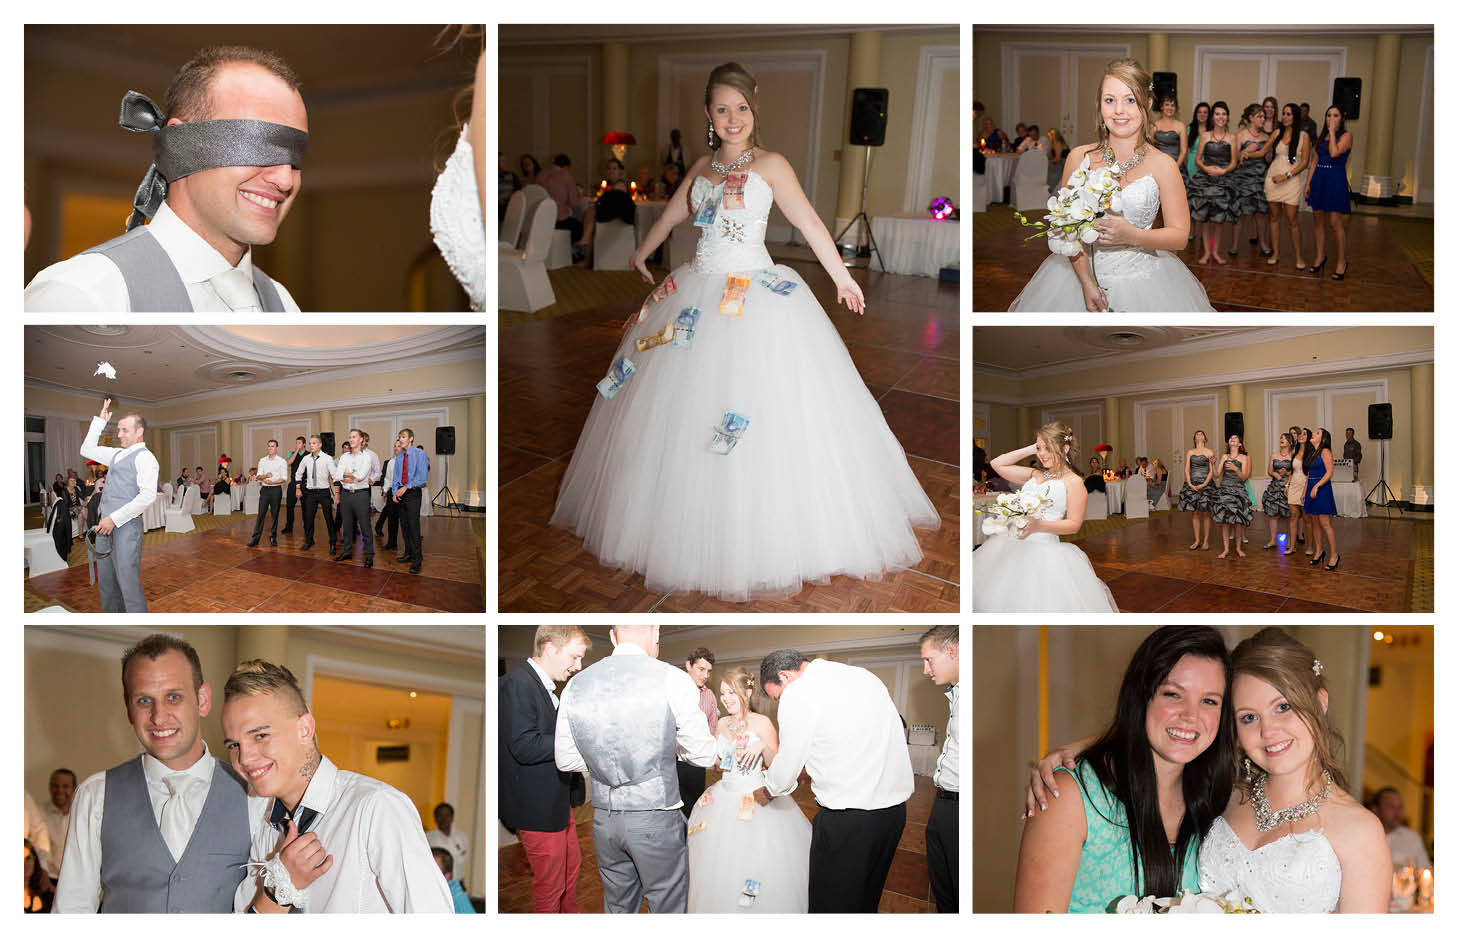 wedding traditions at the country club johannesburg